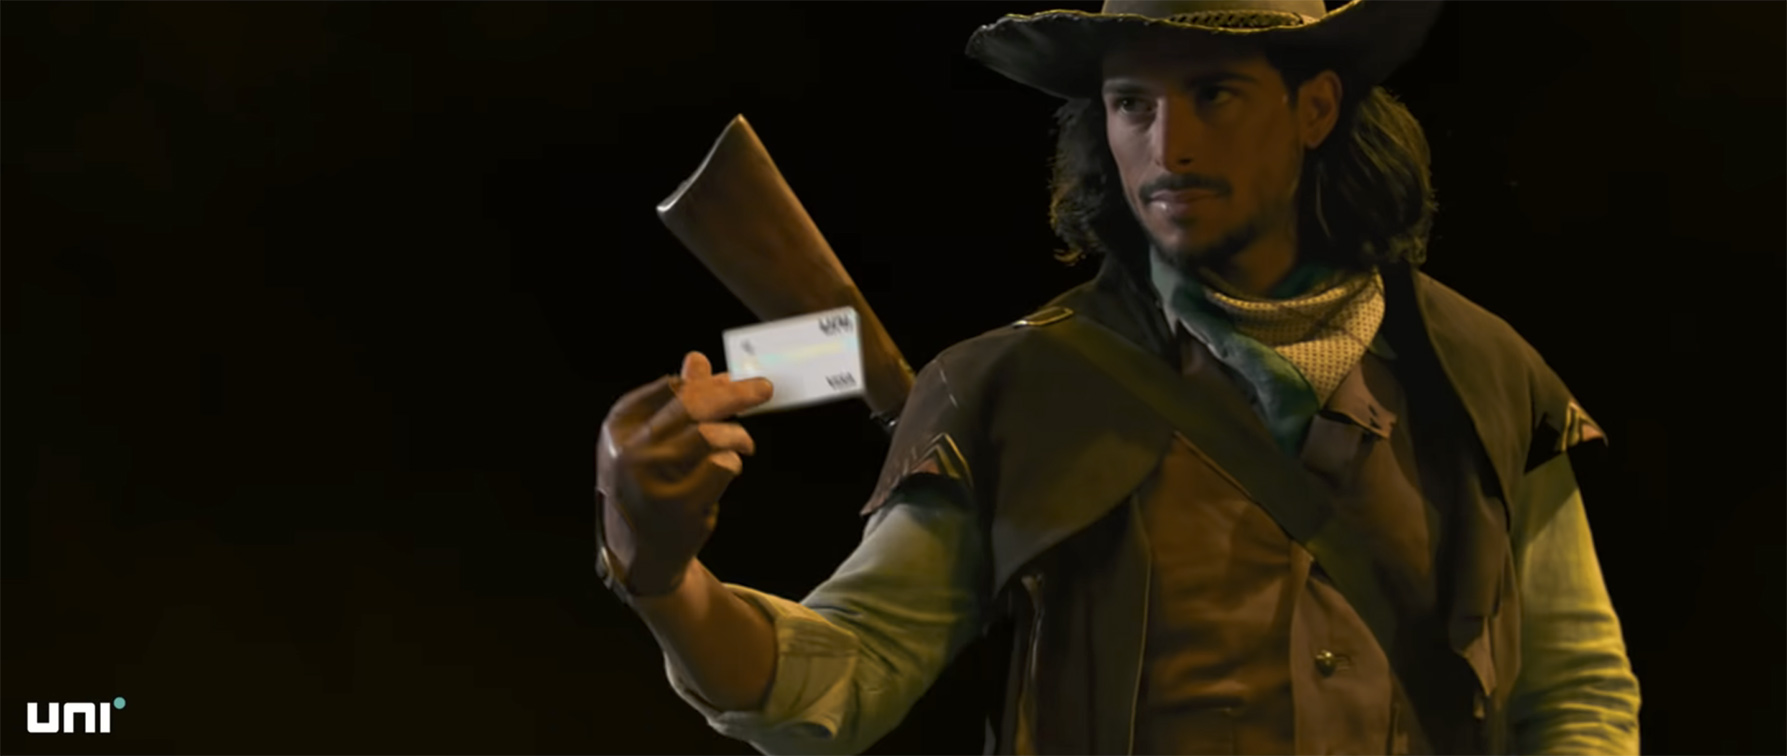 Dentsu Webchutney India launches Uni Cards new Pay 1/3rd Card with two battle  films starring a Samurai & Cowboy